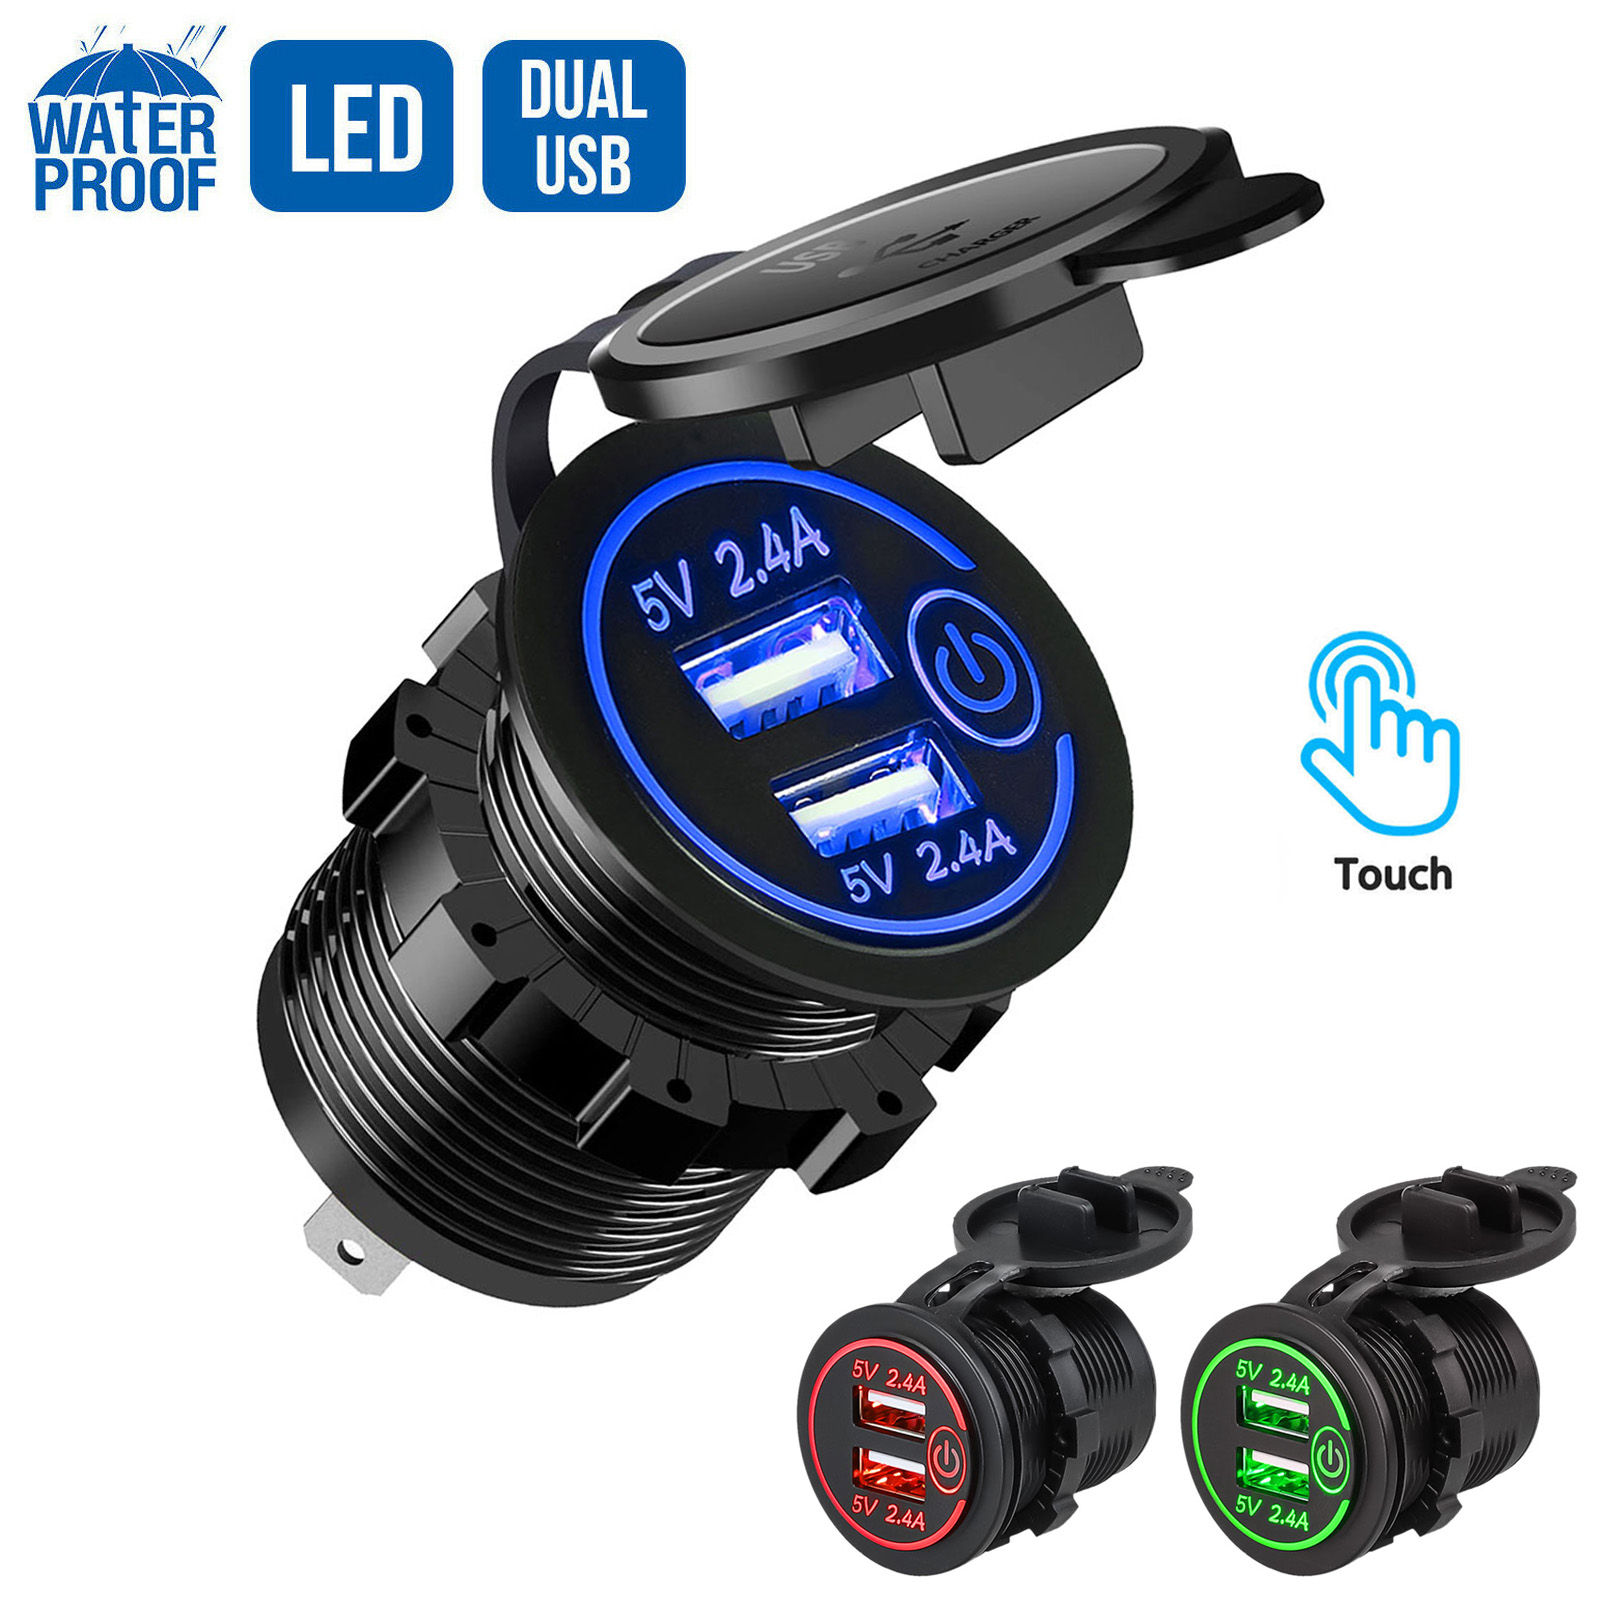 12V/24V Dual USB Fast Charger Socket Outlet W/ Touch Switch